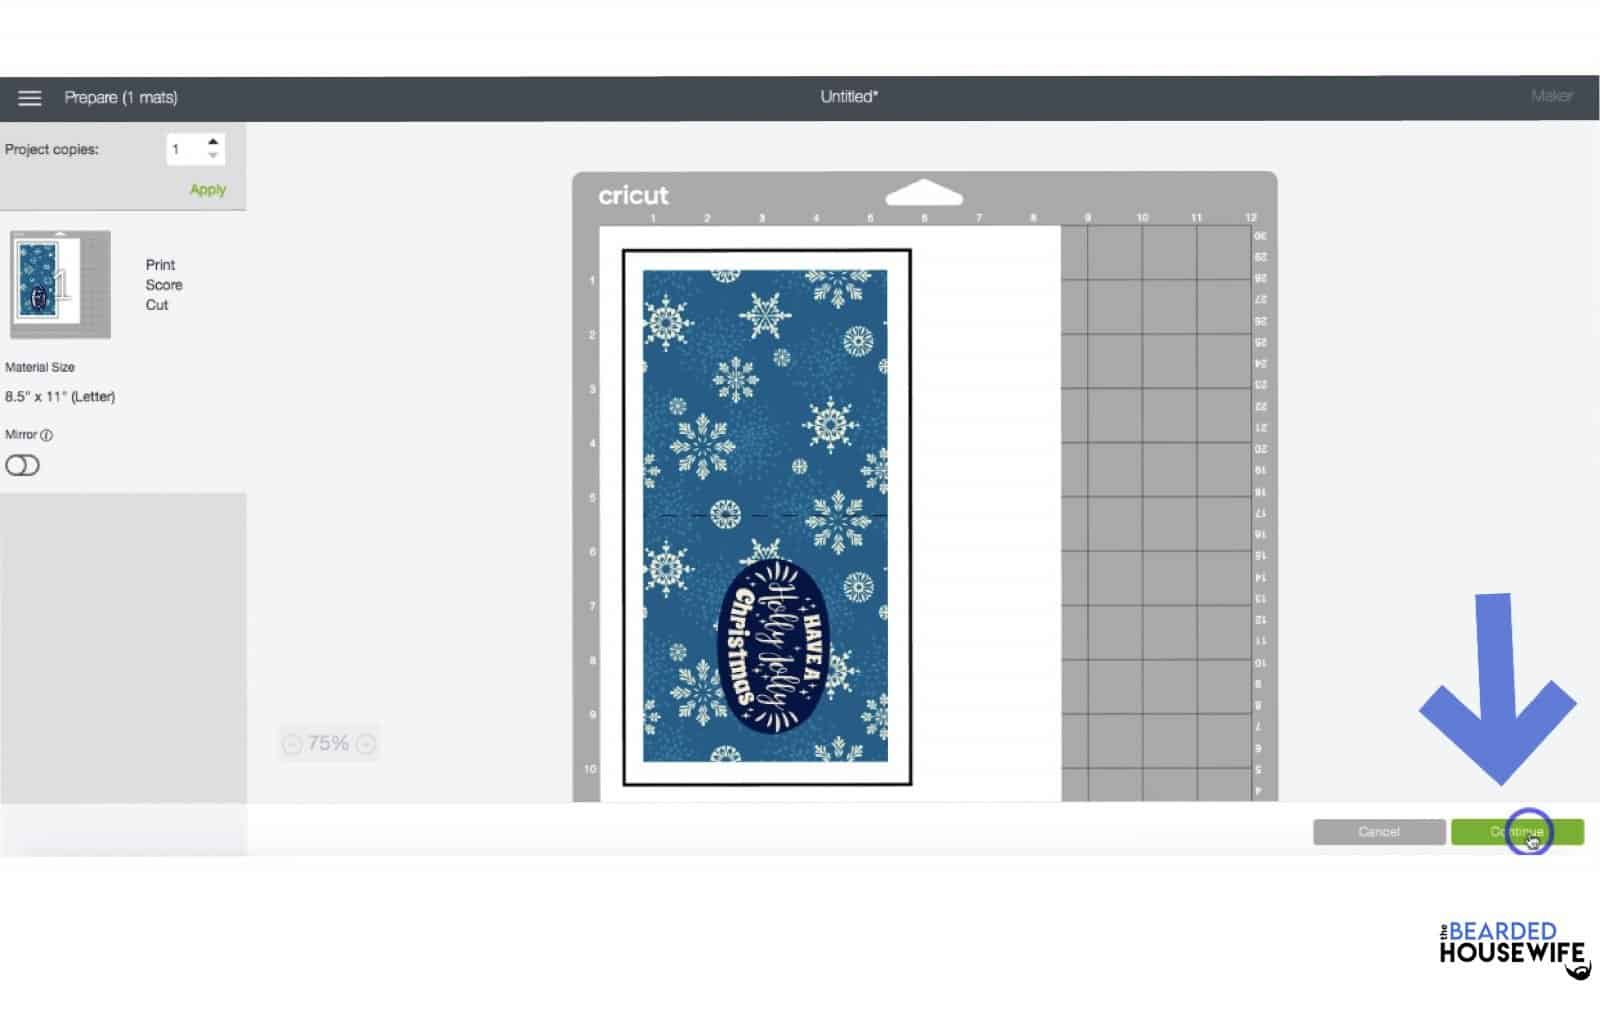 you can see this card is a print then cut image from the black box in the mat preview. click continue